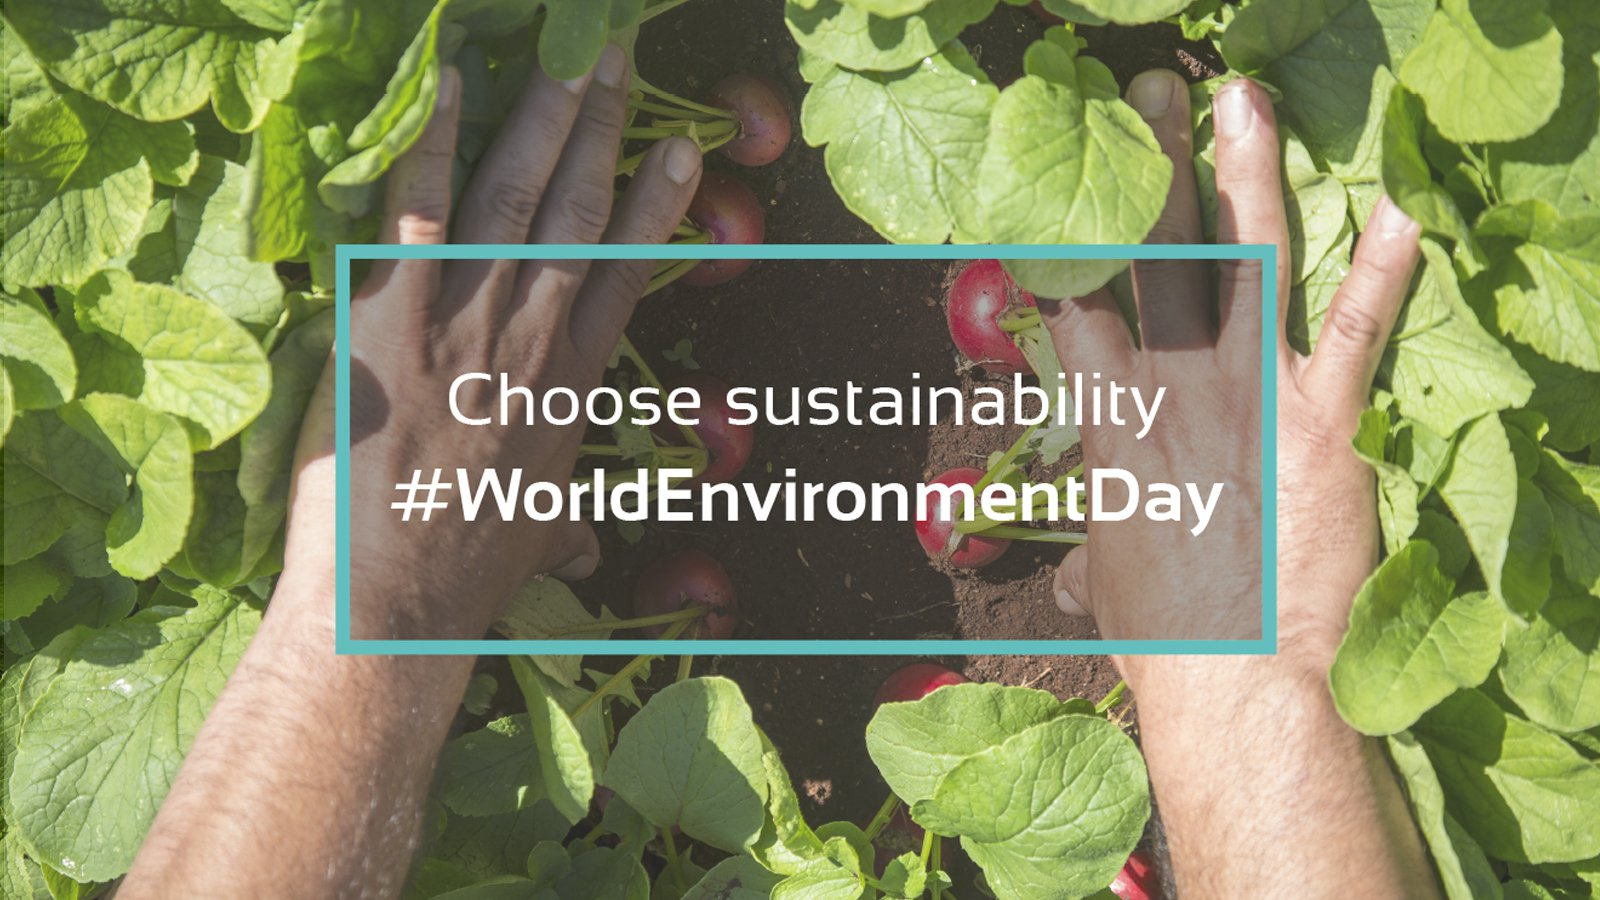 On World Environment Day, choose to eat sustainably